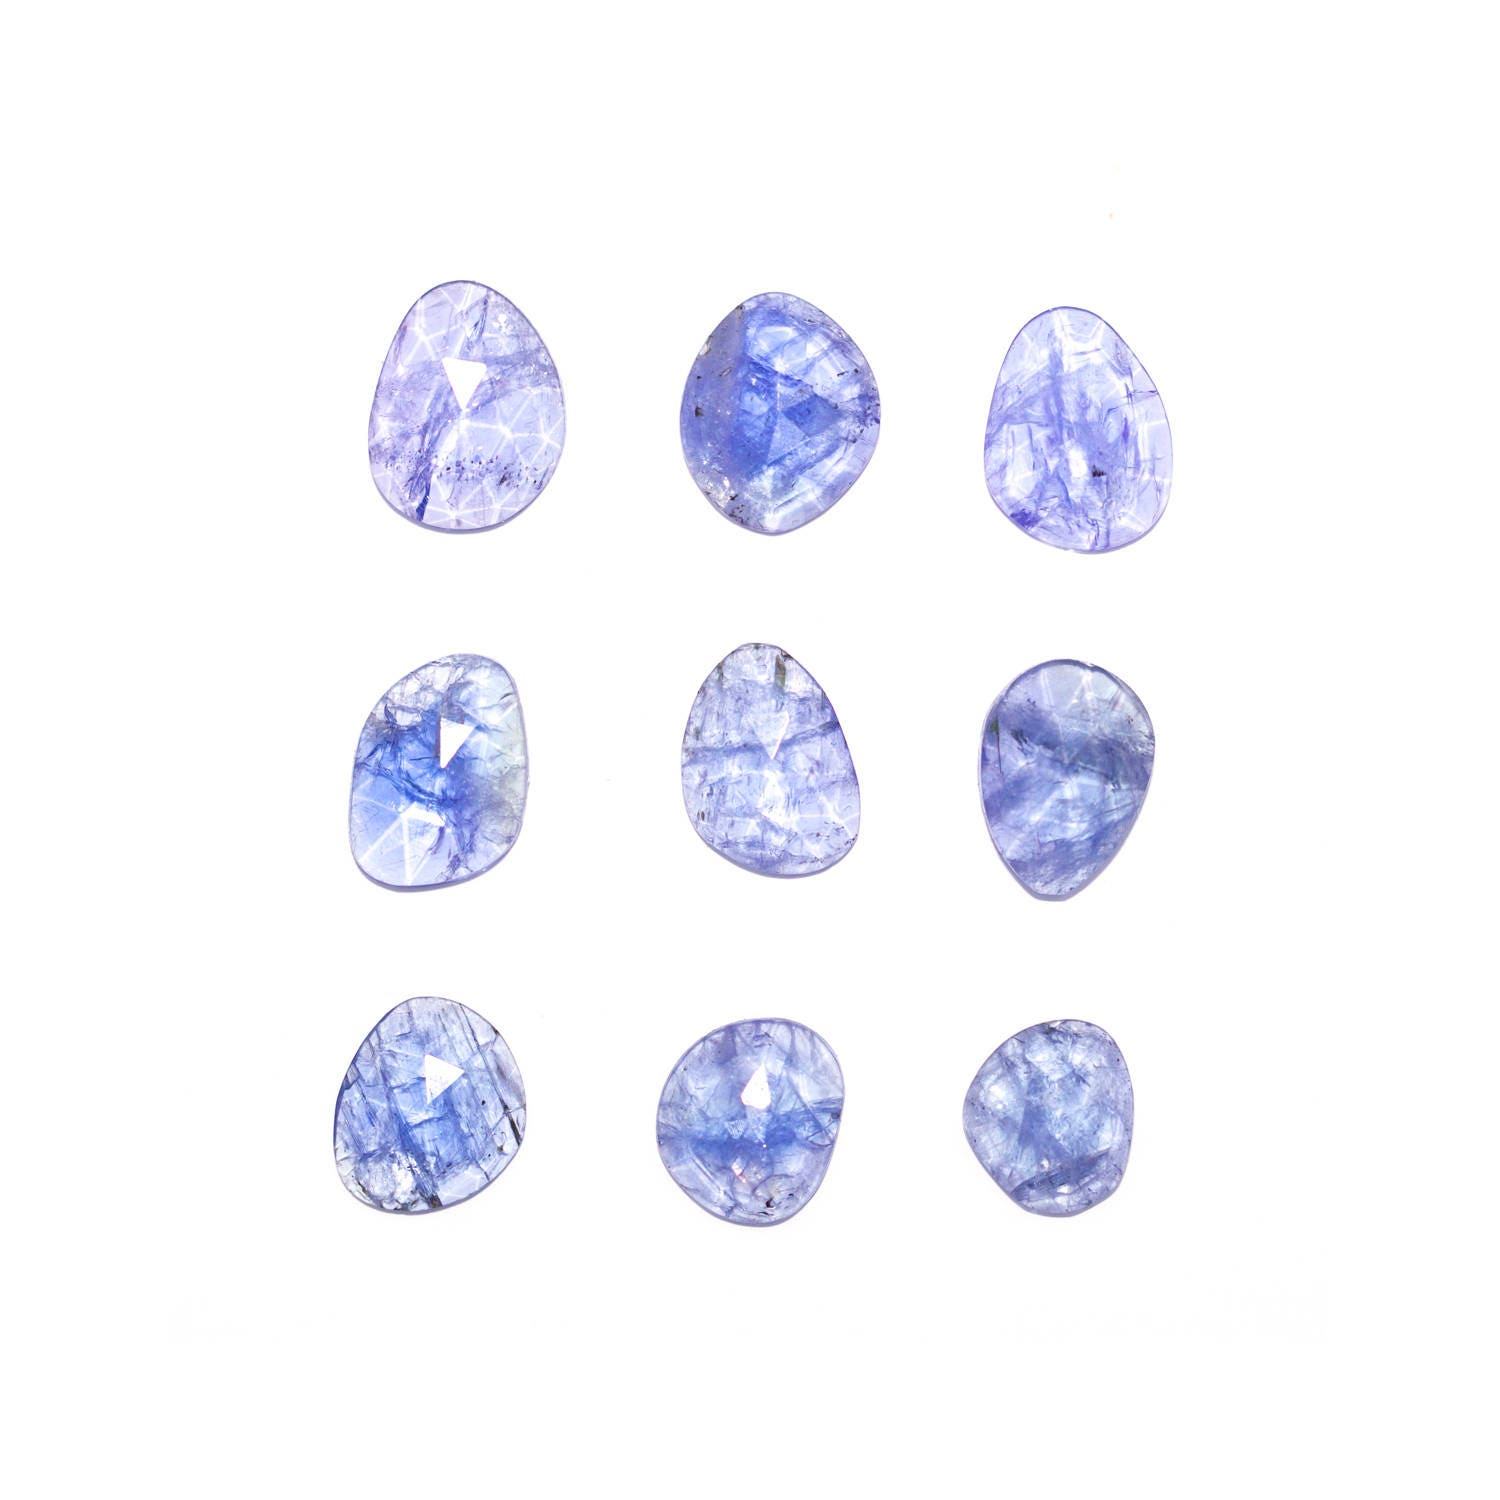 gemstone loose lot mineral raw tanzanite natural roundsnroses rough blue pin specimen